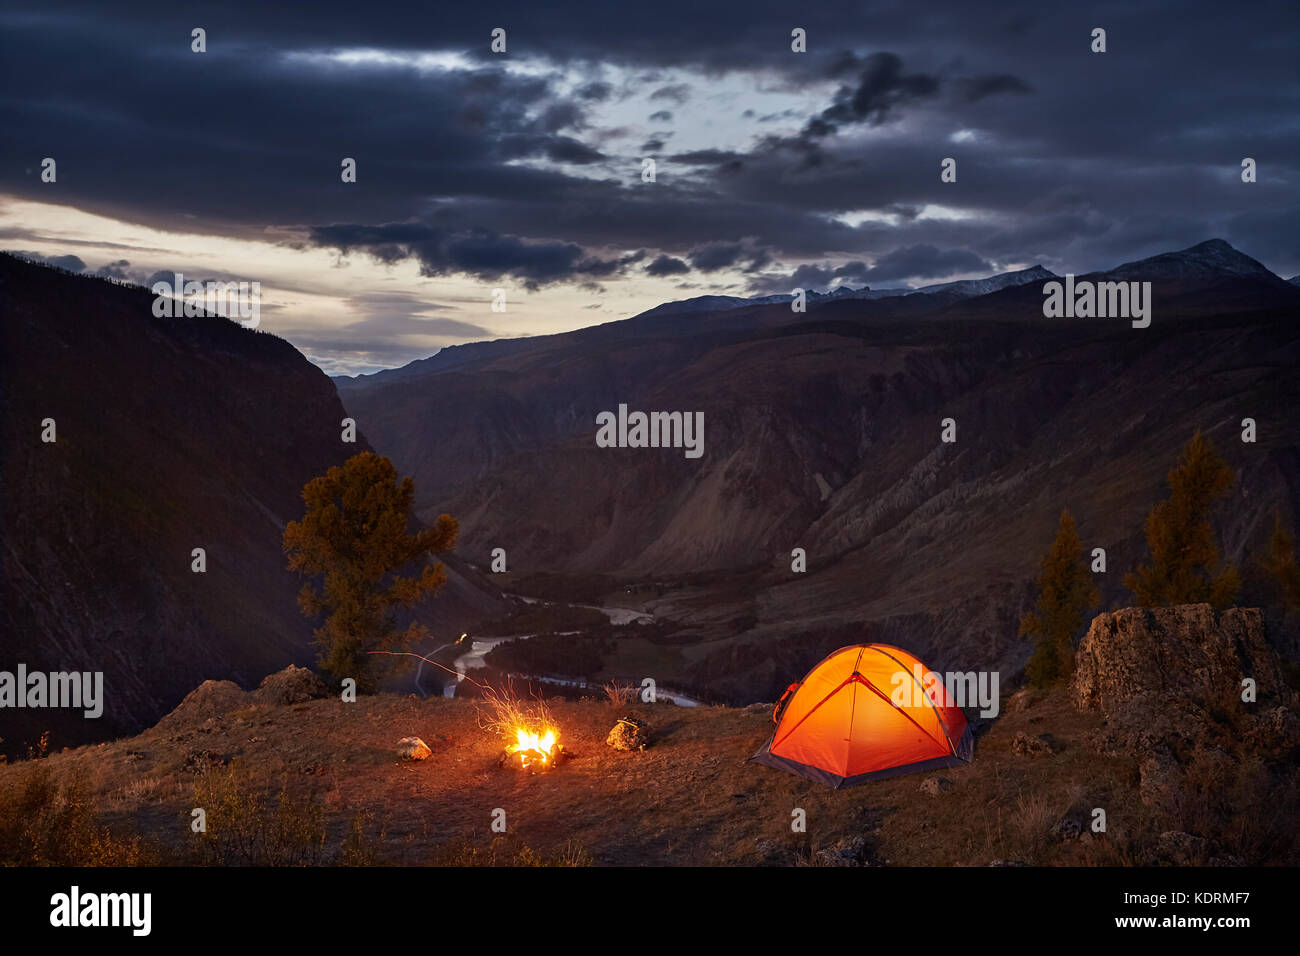 A illuminated tent and campfire in mountains in dawn - Stock Image